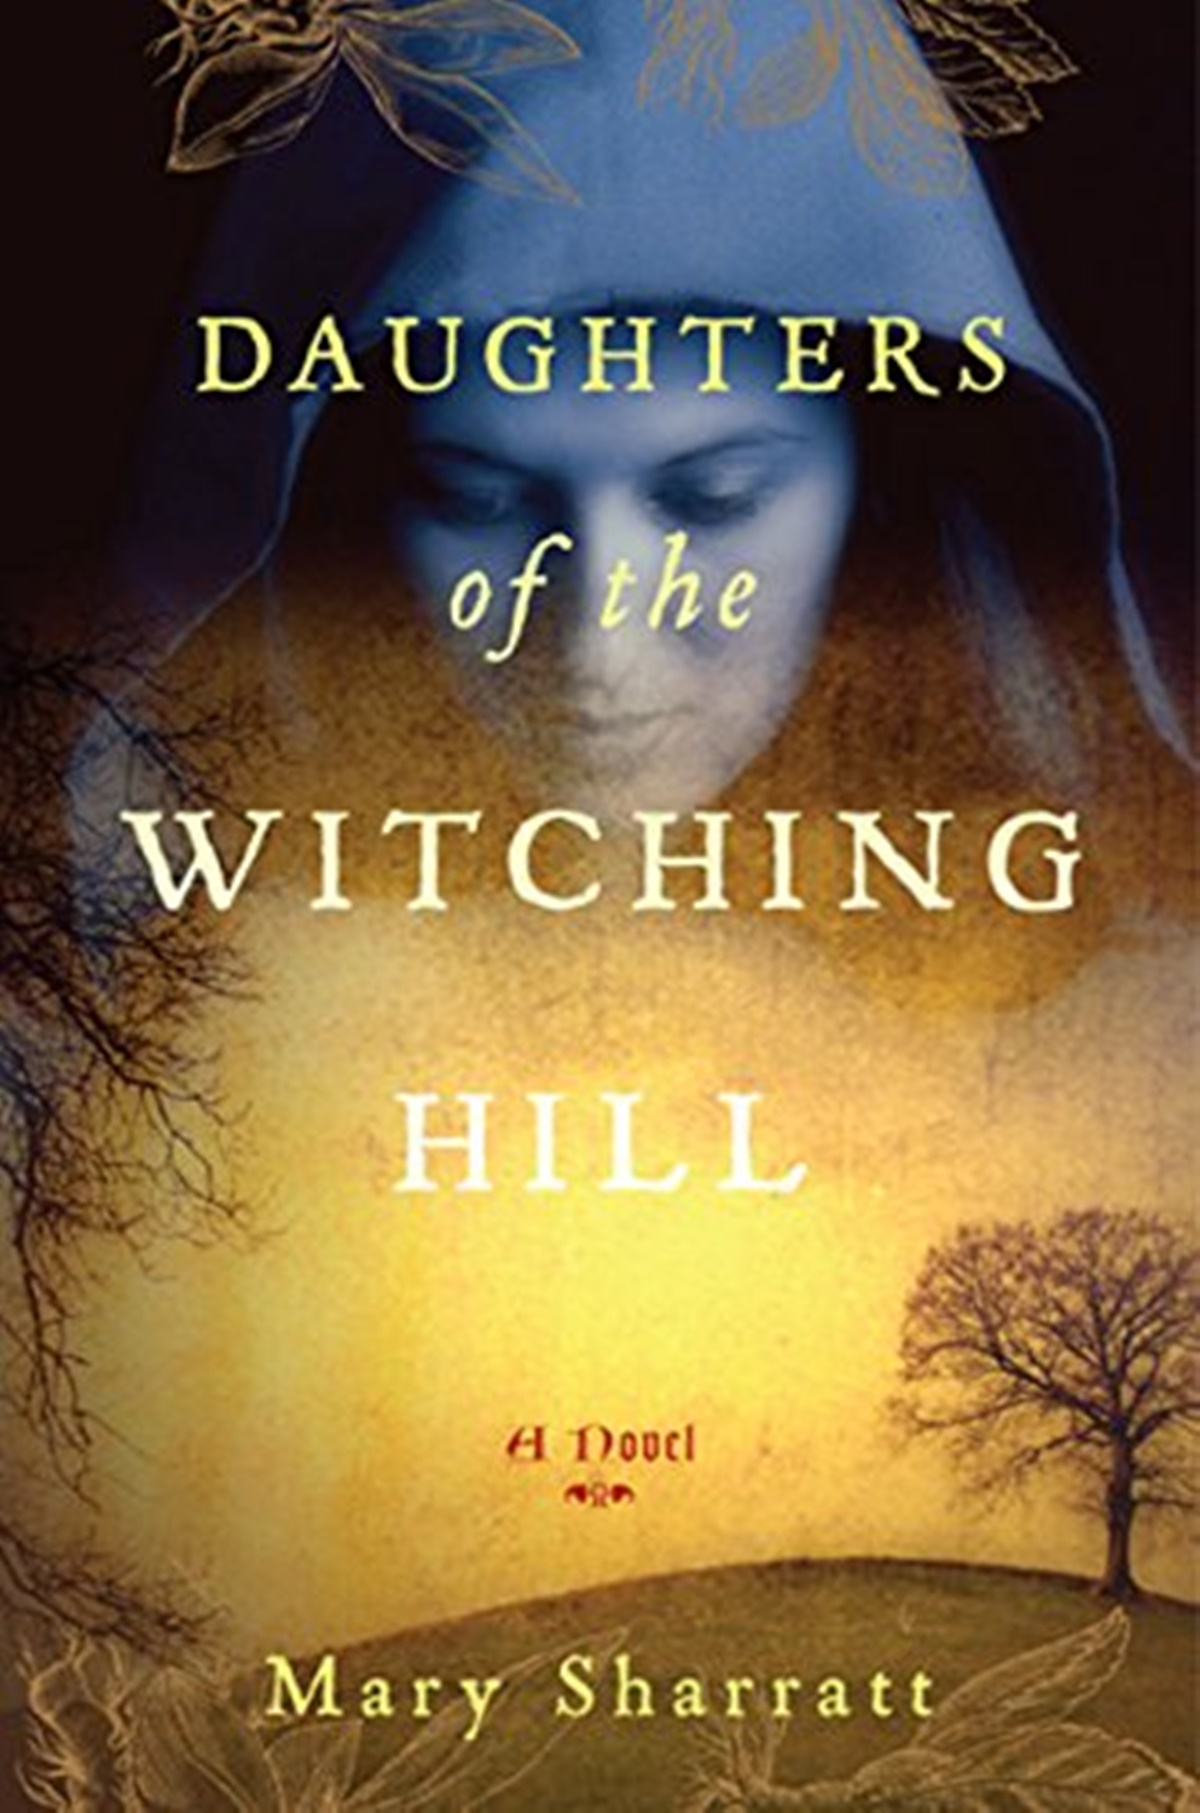 Historical Fiction Books, Daughters of the Witching Hill by Mary Sharratt, books, wdc-slideshow